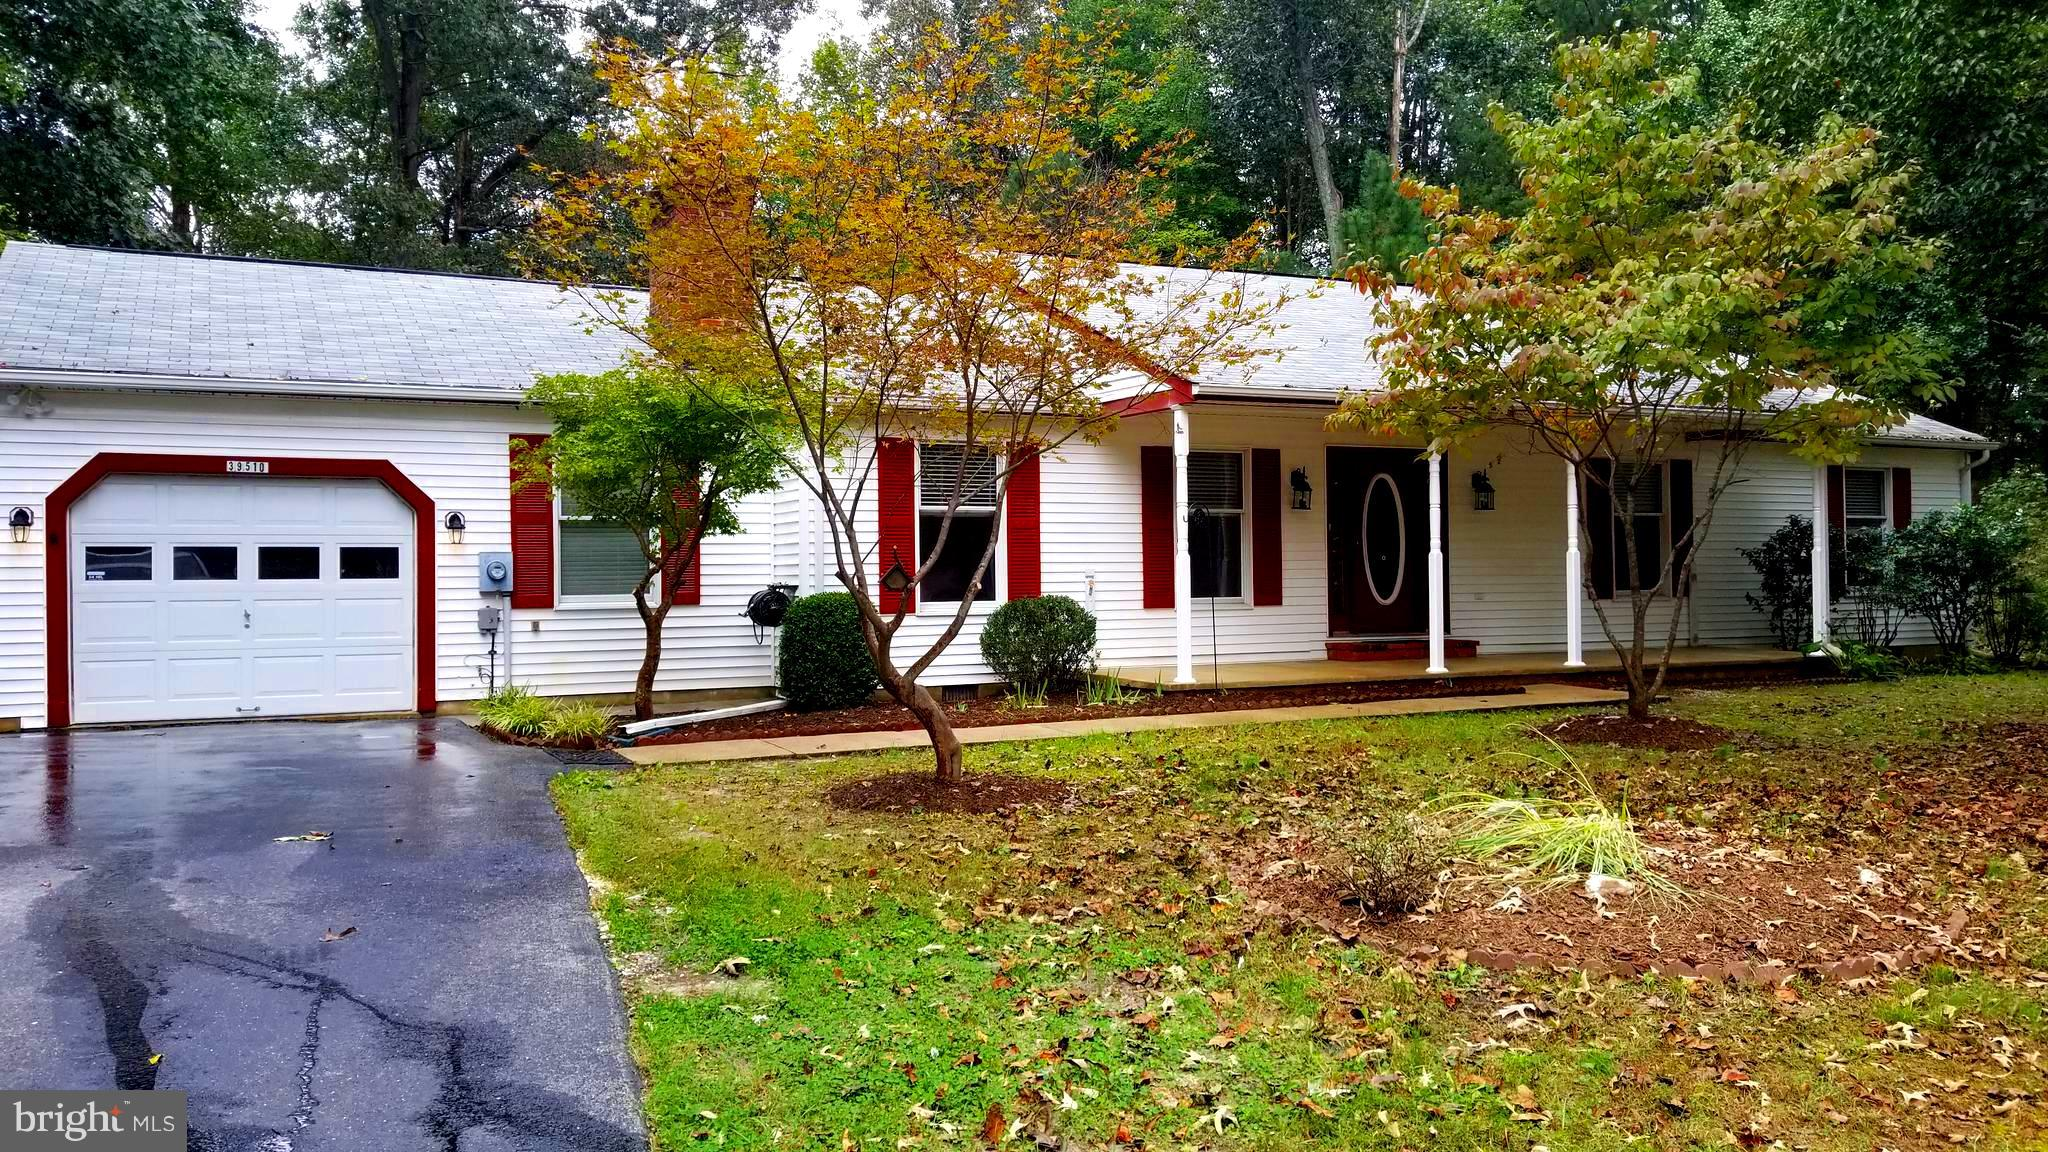 PEACEFUL PRIVATE SETTING AT THE END OF CUL DE SAC. NEW PAINT, CARPET, APPLIANCES, TOP OF THE LINE HVAC SYSTEM. CLIMATE CONTROLLED SUNROOM TO USE YEAR ROUND!! MOVE IN READY.  GORGEOUS HARDWOOD FLOORING, HUGE EAT-IN KITCHEN, FORMAL DINING ROOM & COZY FAMILY ROOM TO ENJOY THE WARM BRICK FIRE PLACE. ONE YEAR WARRANTY INCLUDED. SEPERATE LAUNDRY LOADS OF STORAGE. RARE FIND TO ENJOY FOR YEARS!